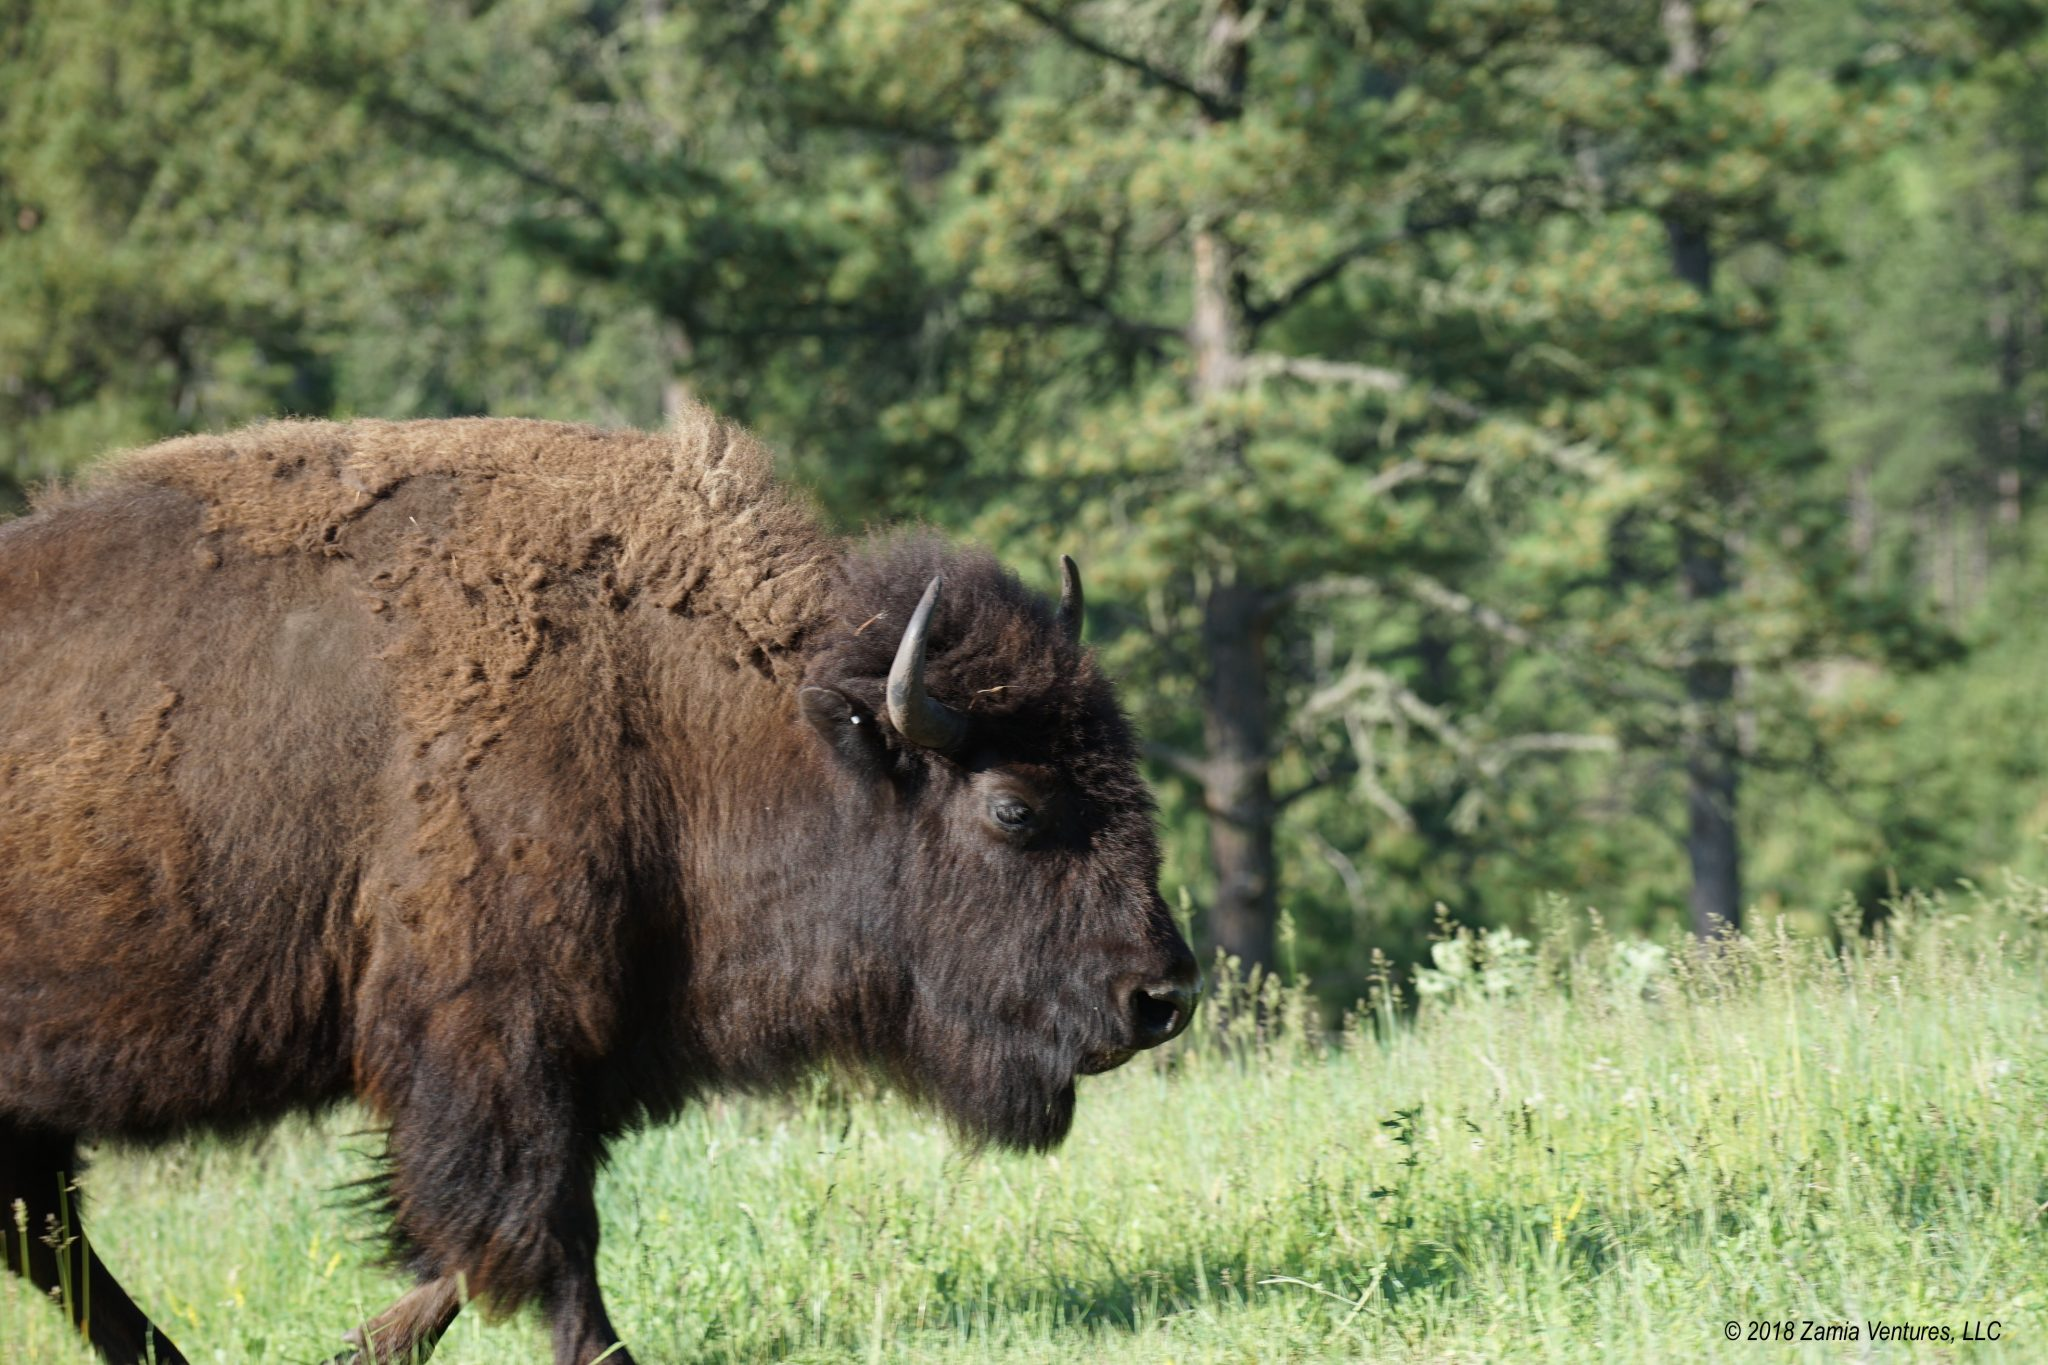 Finding the Wild in the Black Hills